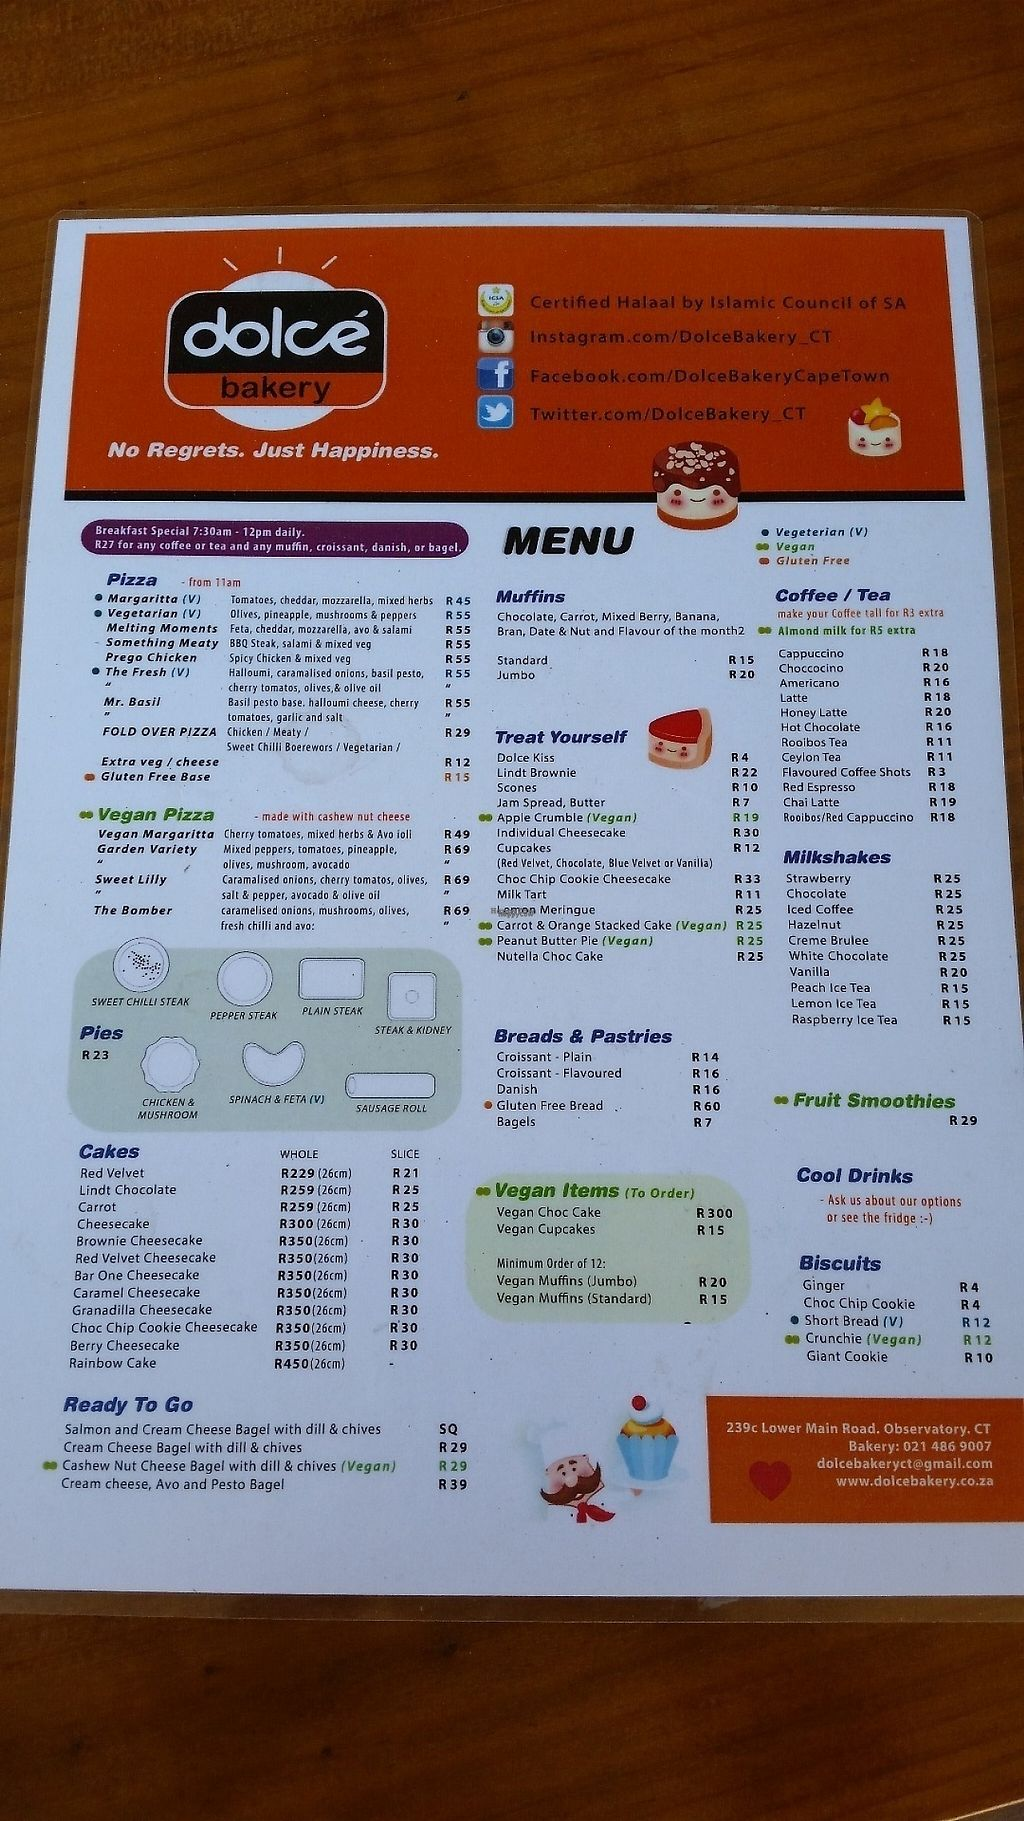 """Photo of Dolce Bakery  by <a href=""""/members/profile/konlish"""">konlish</a> <br/>Menu <br/> January 16, 2017  - <a href='/contact/abuse/image/77035/212423'>Report</a>"""